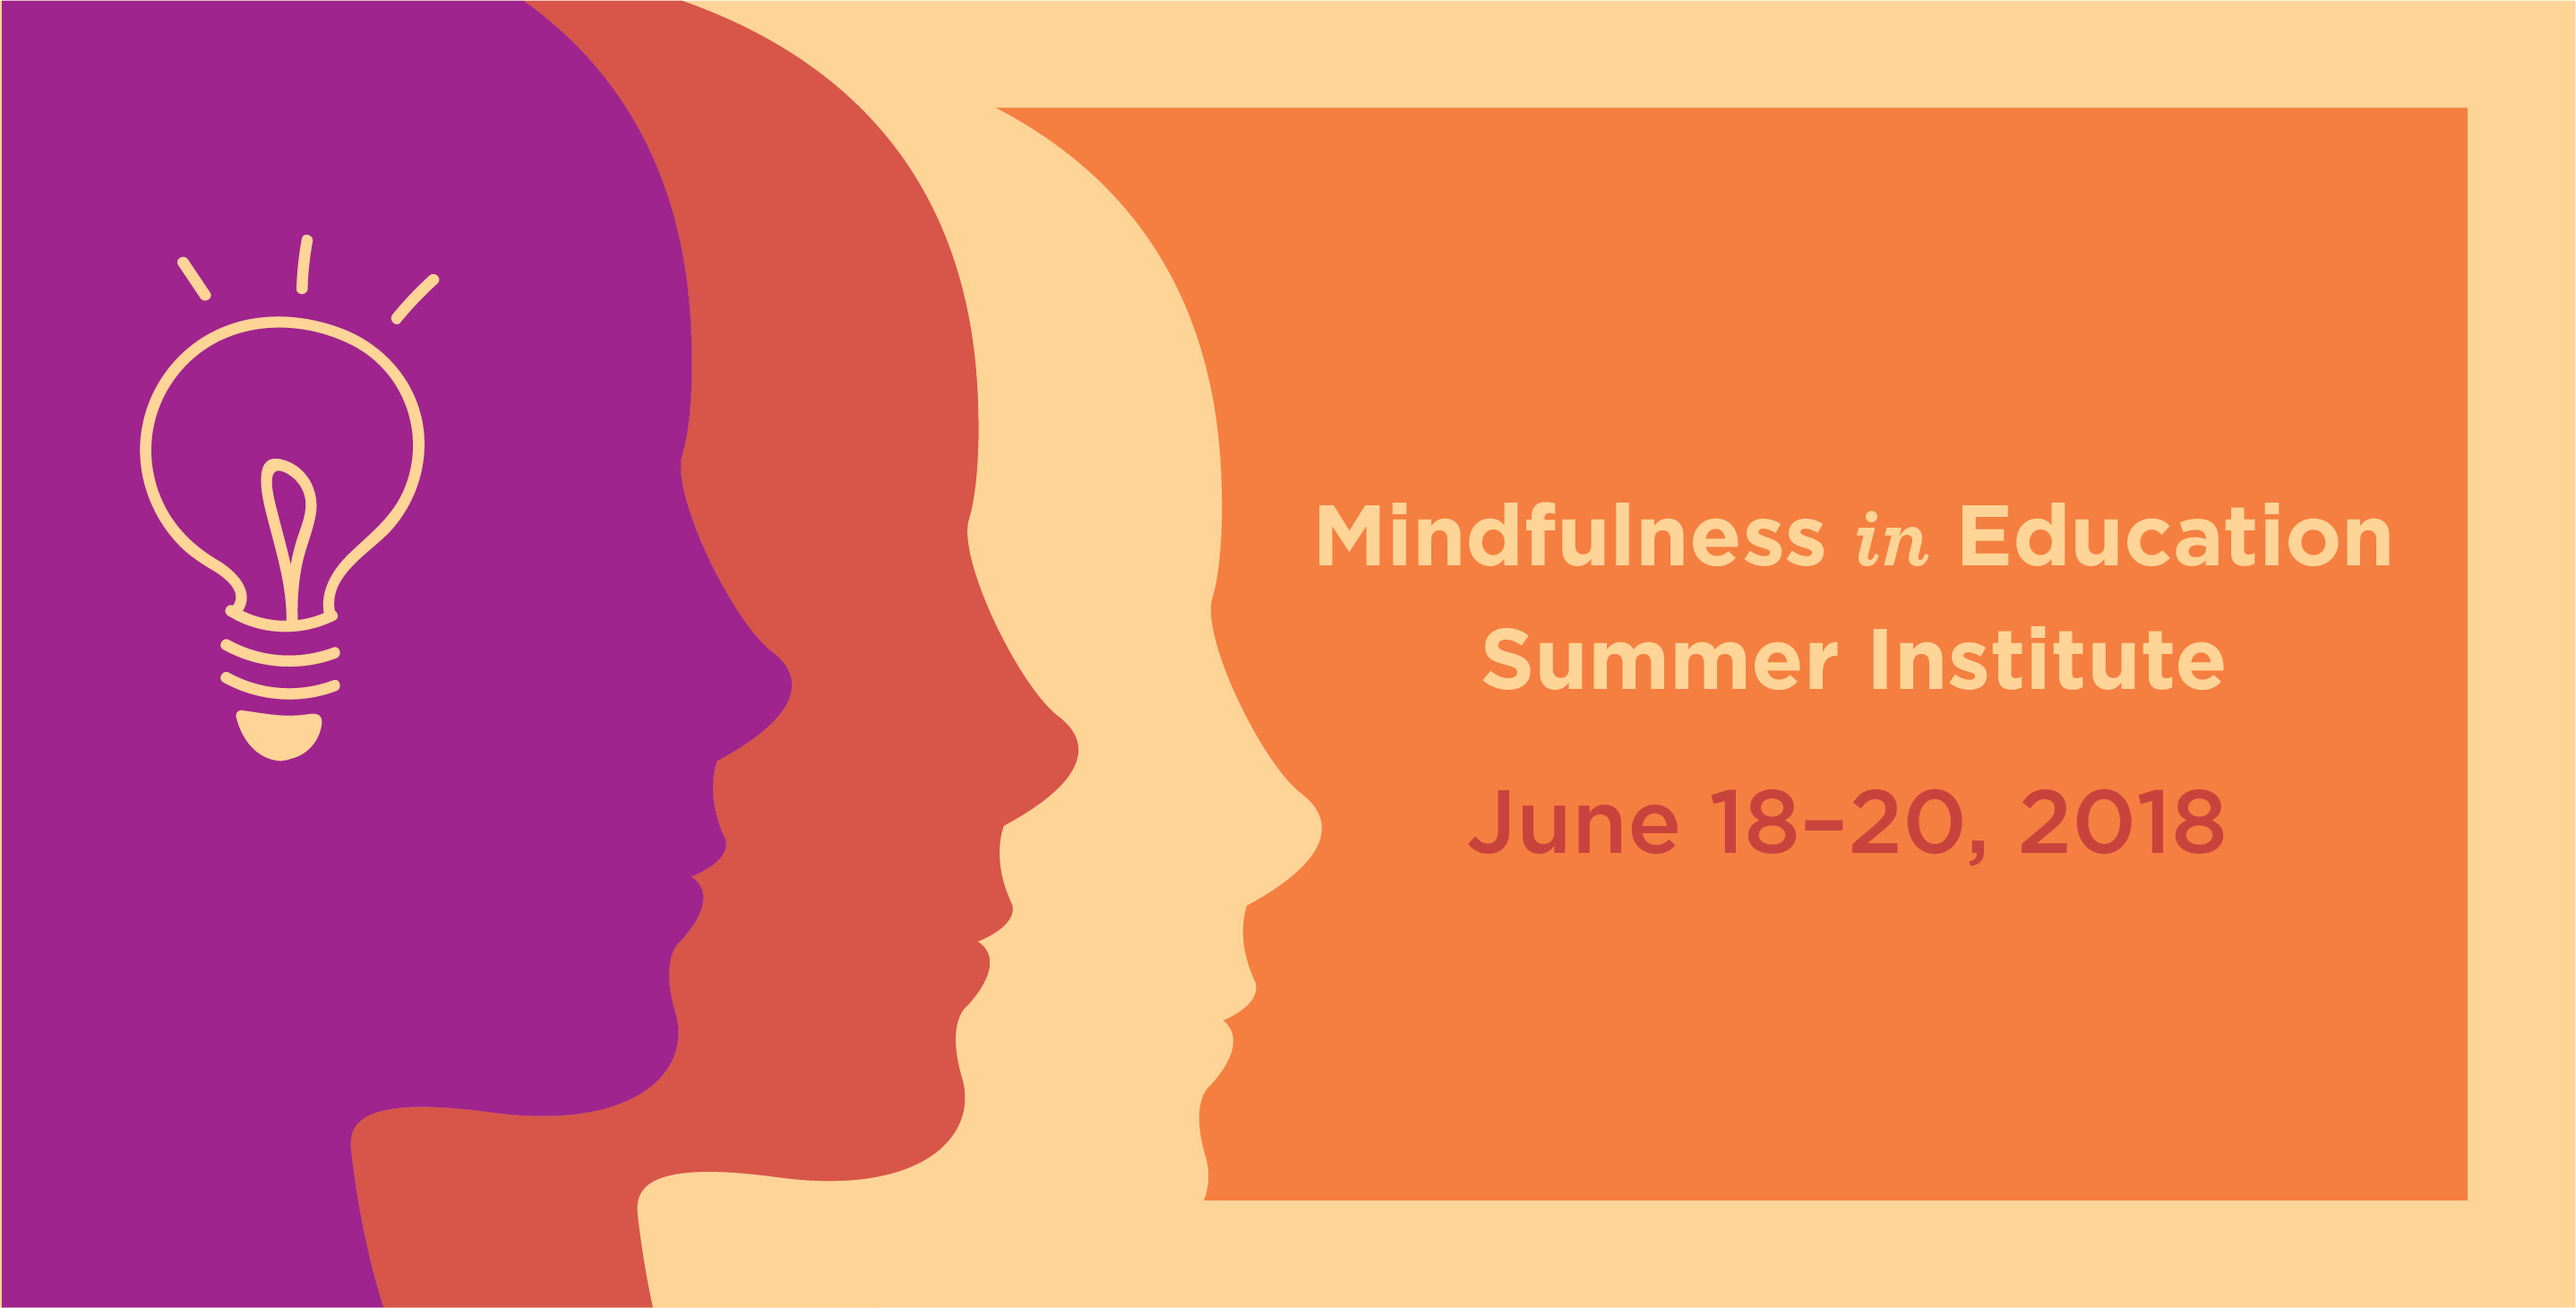 mindfulness in education summer institute banner with faces in profile